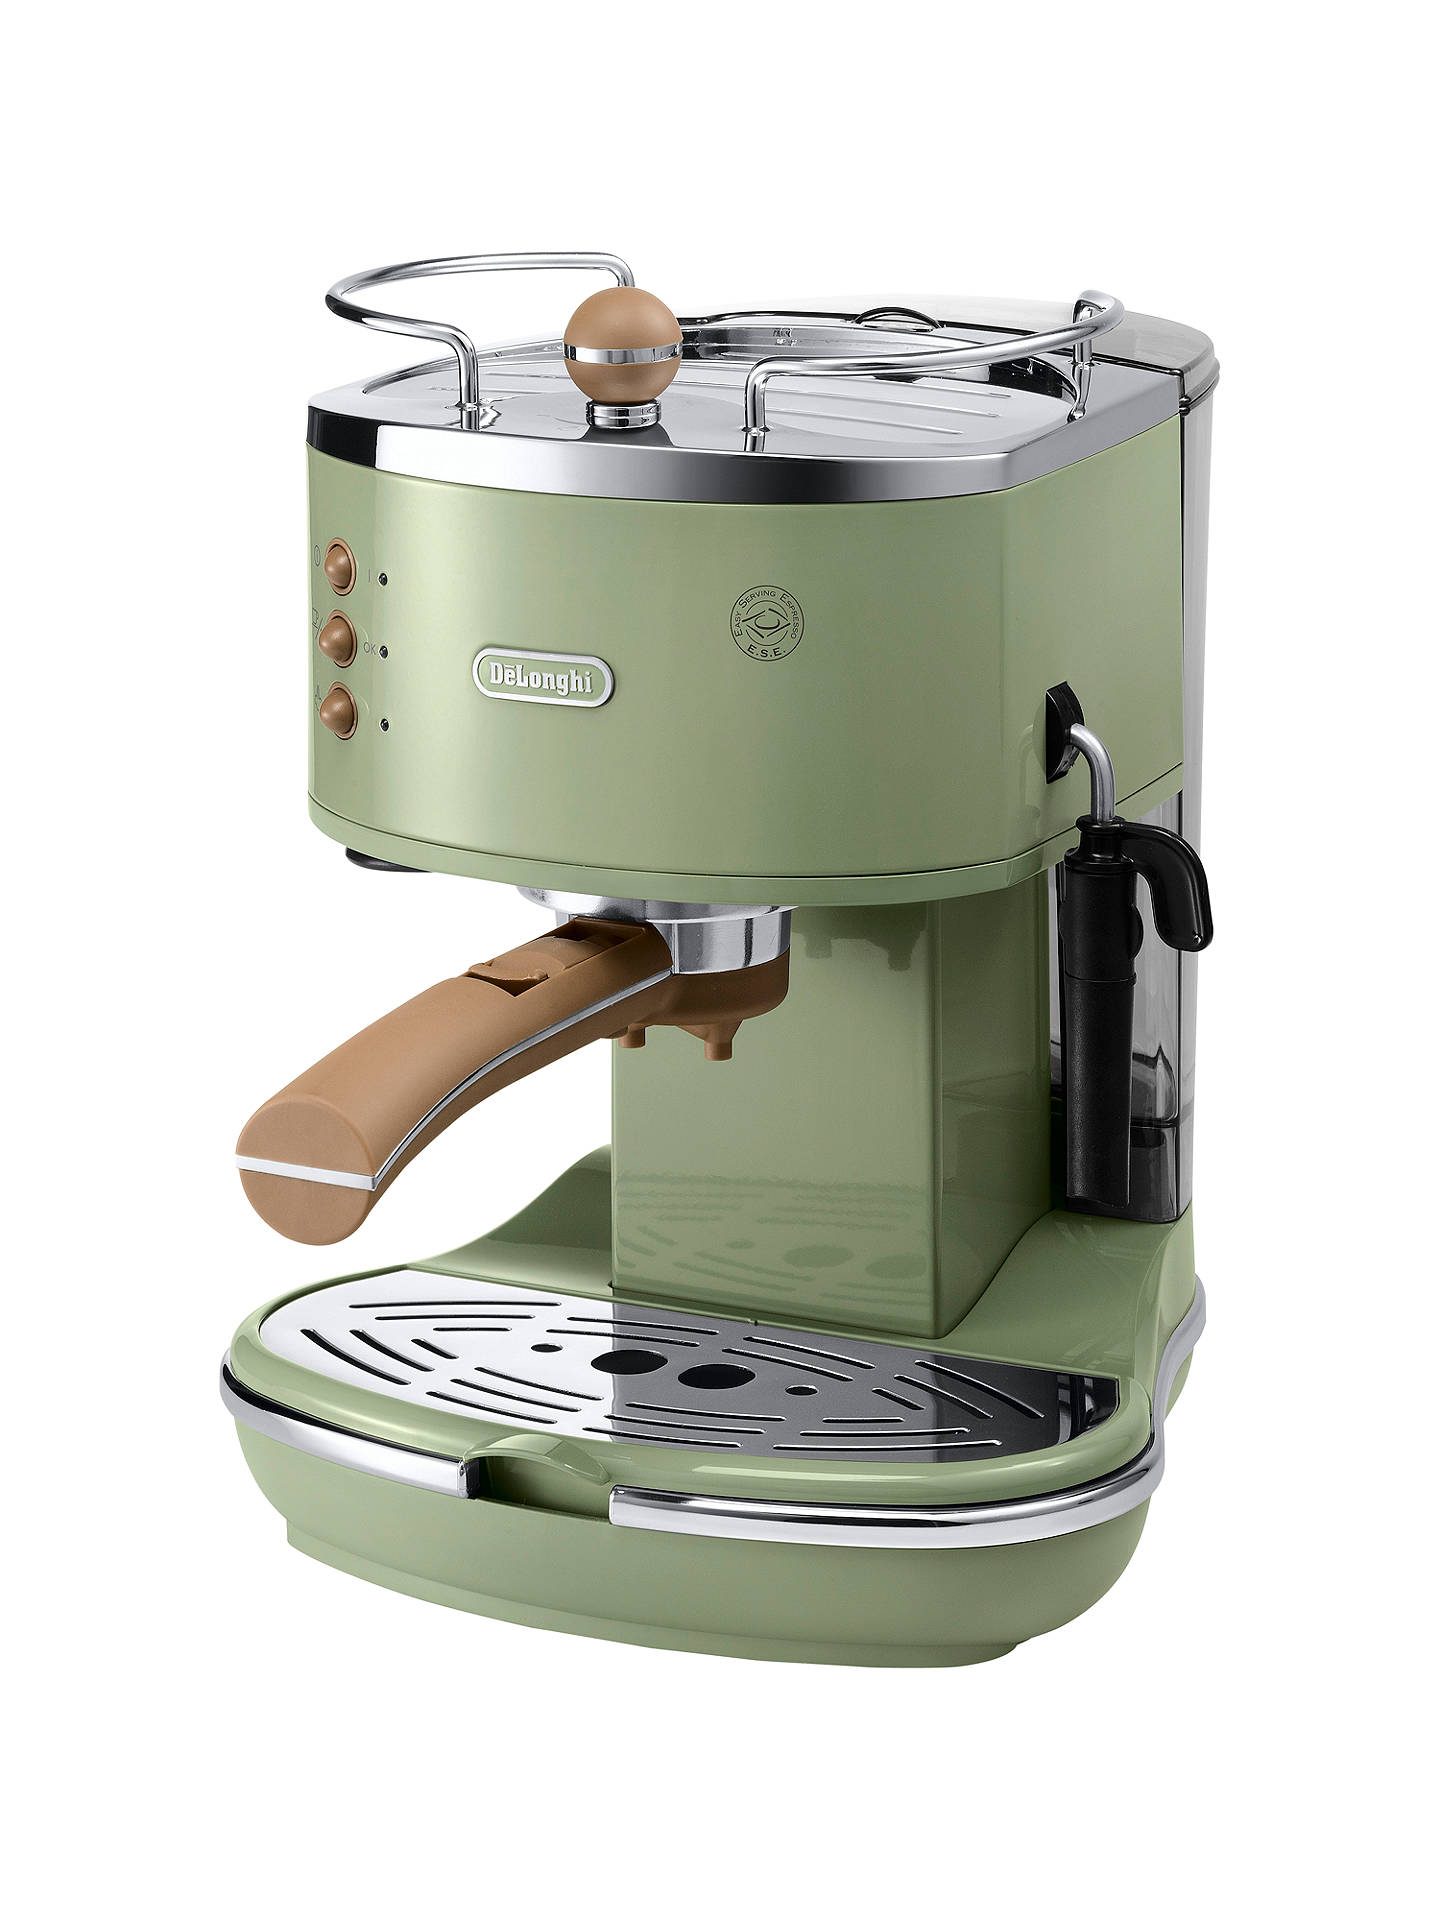 BuyDe'Longhi ECOV310.GR Vintage Icona Espresso Coffee Machine, Olive Green Online at johnlewis.com